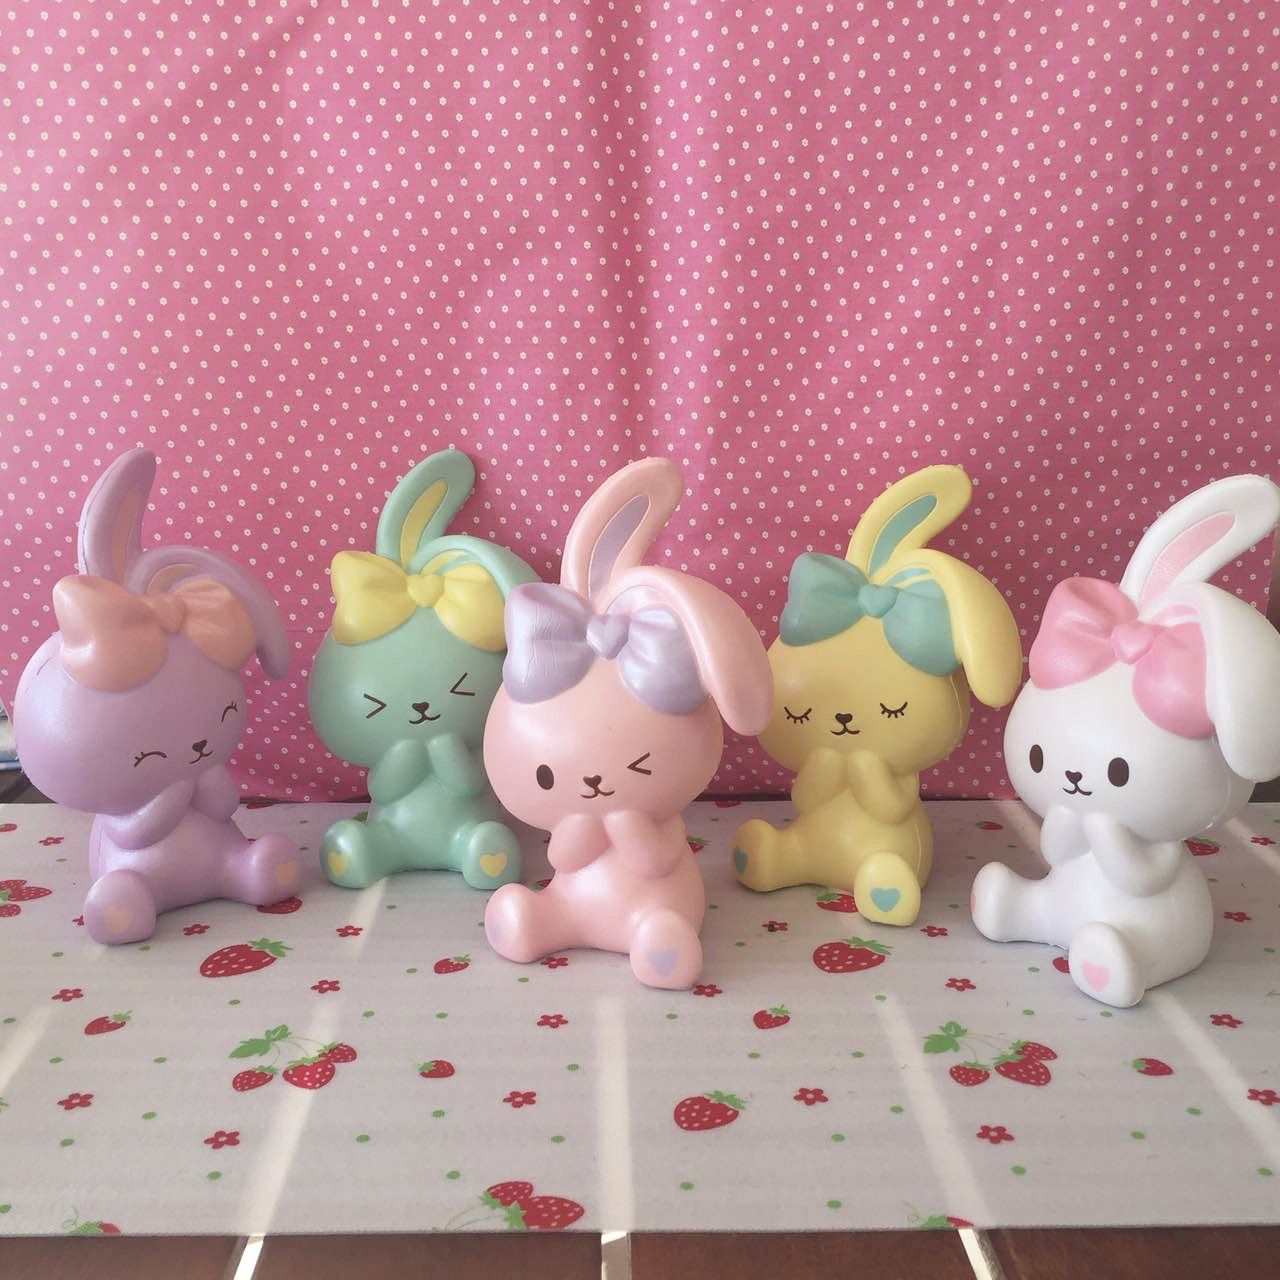 Sweet pearl bunnyscafe bunny squishy scented Stuff for Princess Pinterest Bunny, Pearls ...